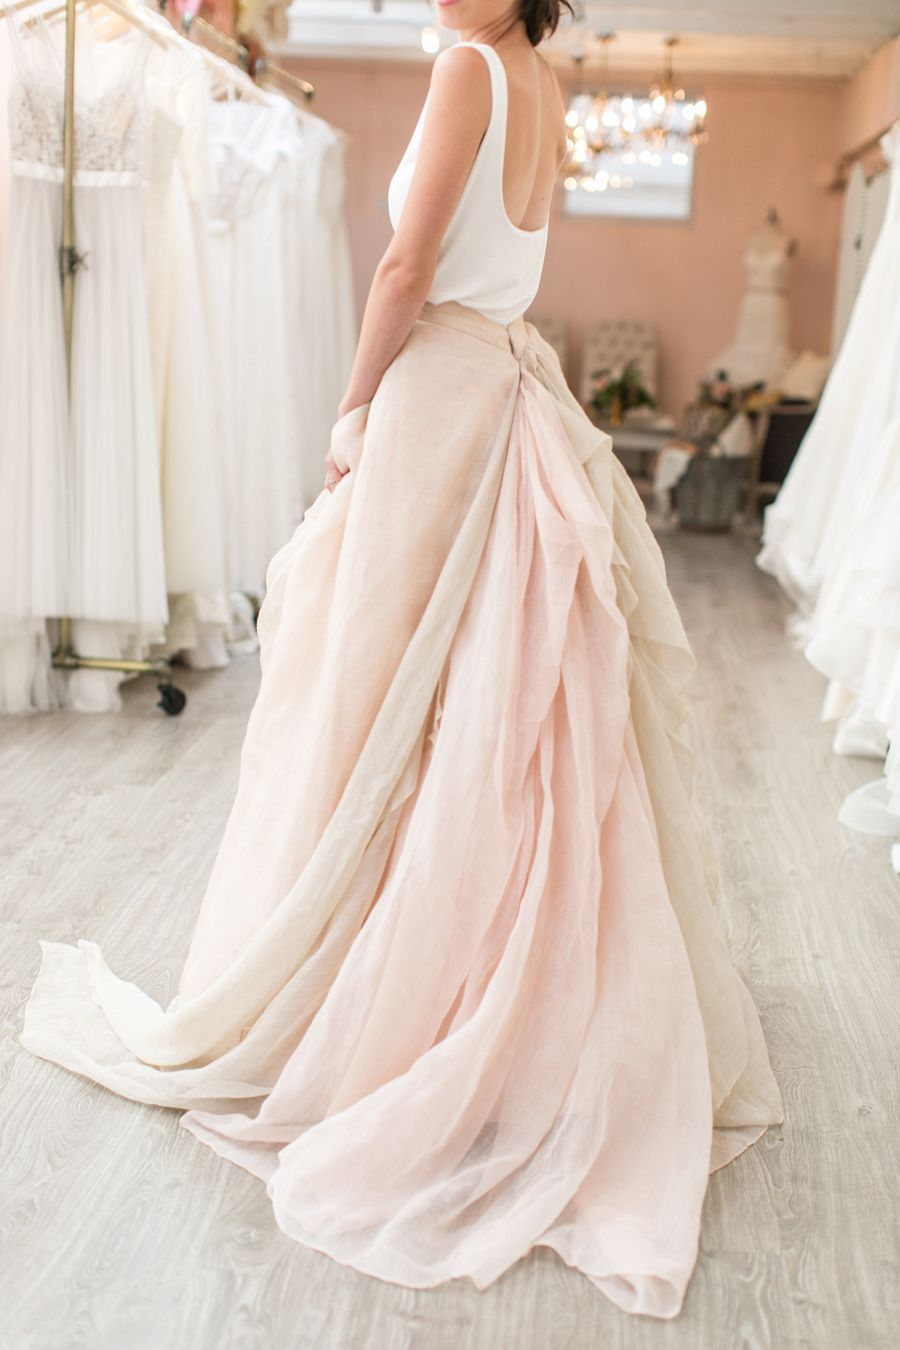 8 Tips For Finding the Perfect Wedding Dress | Bridal boutique ...